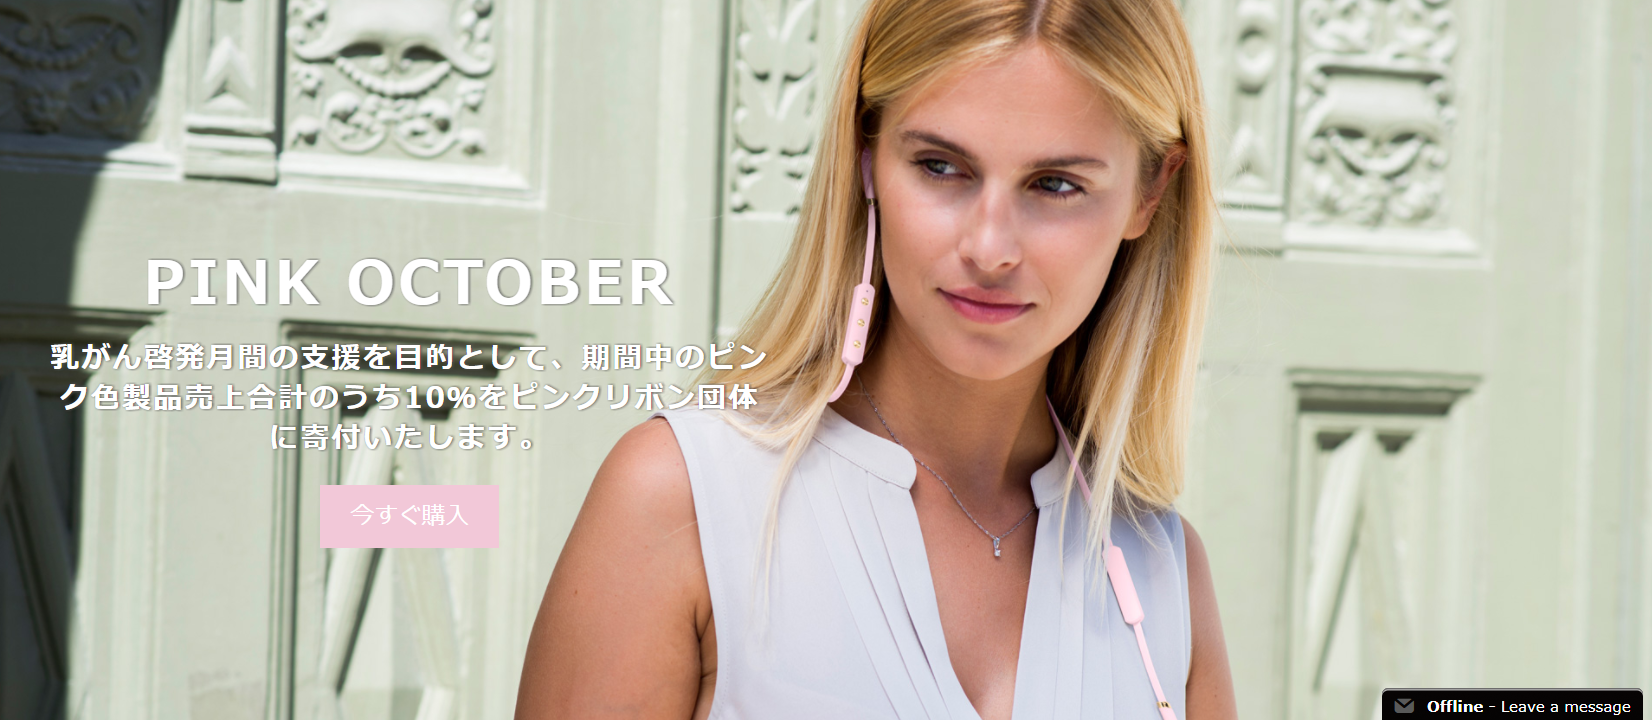 Sudio PINK OCTOBER